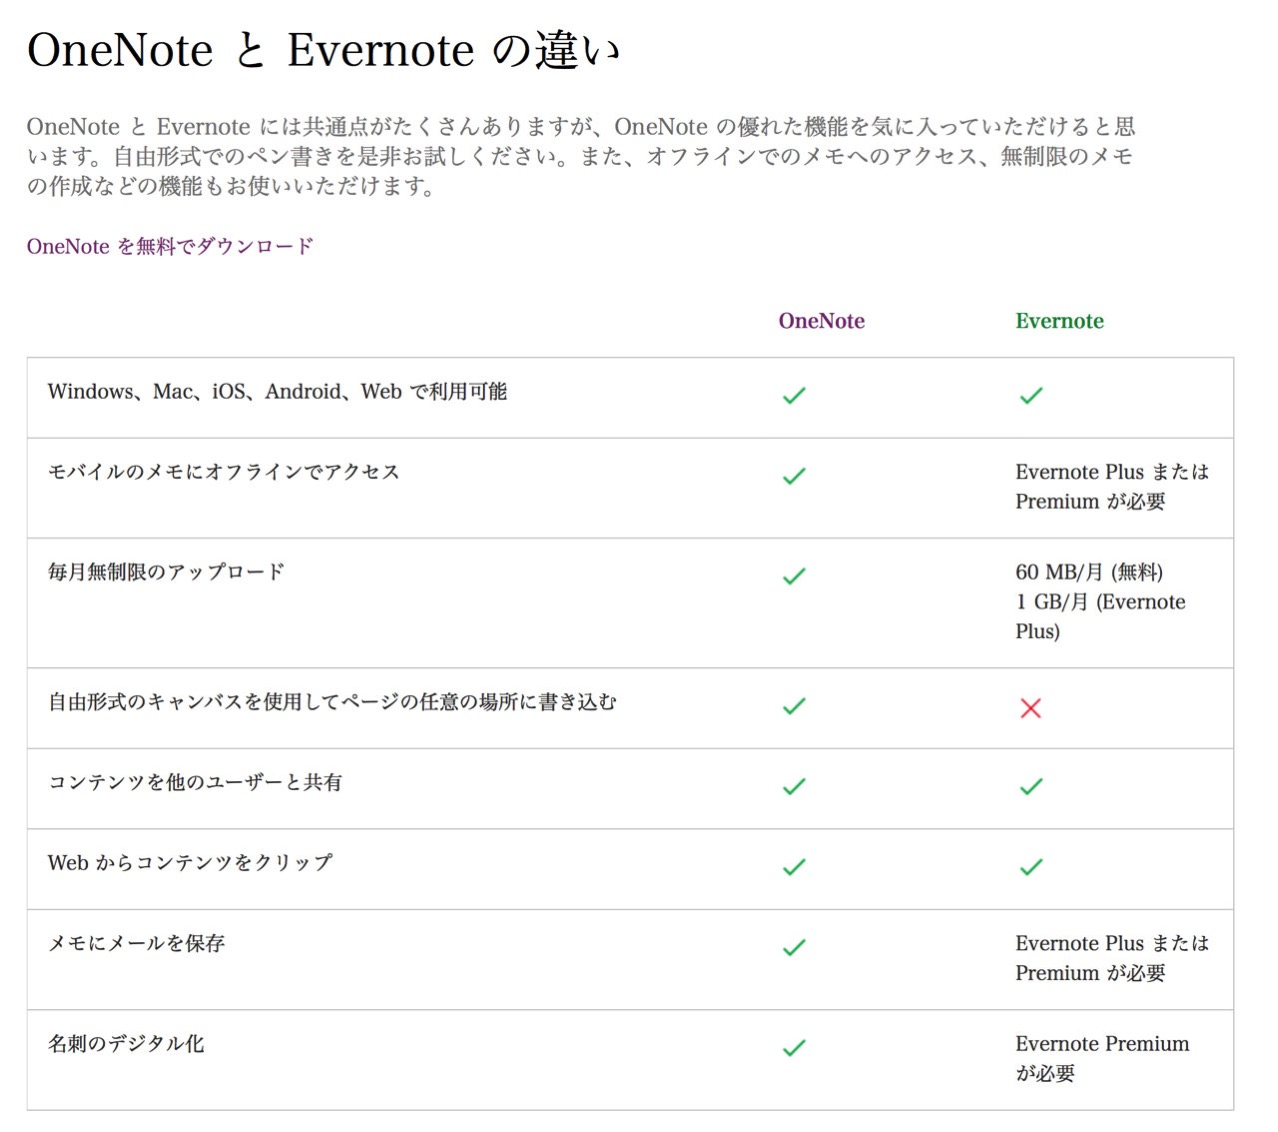 Evernote rate revision 2016 edit2